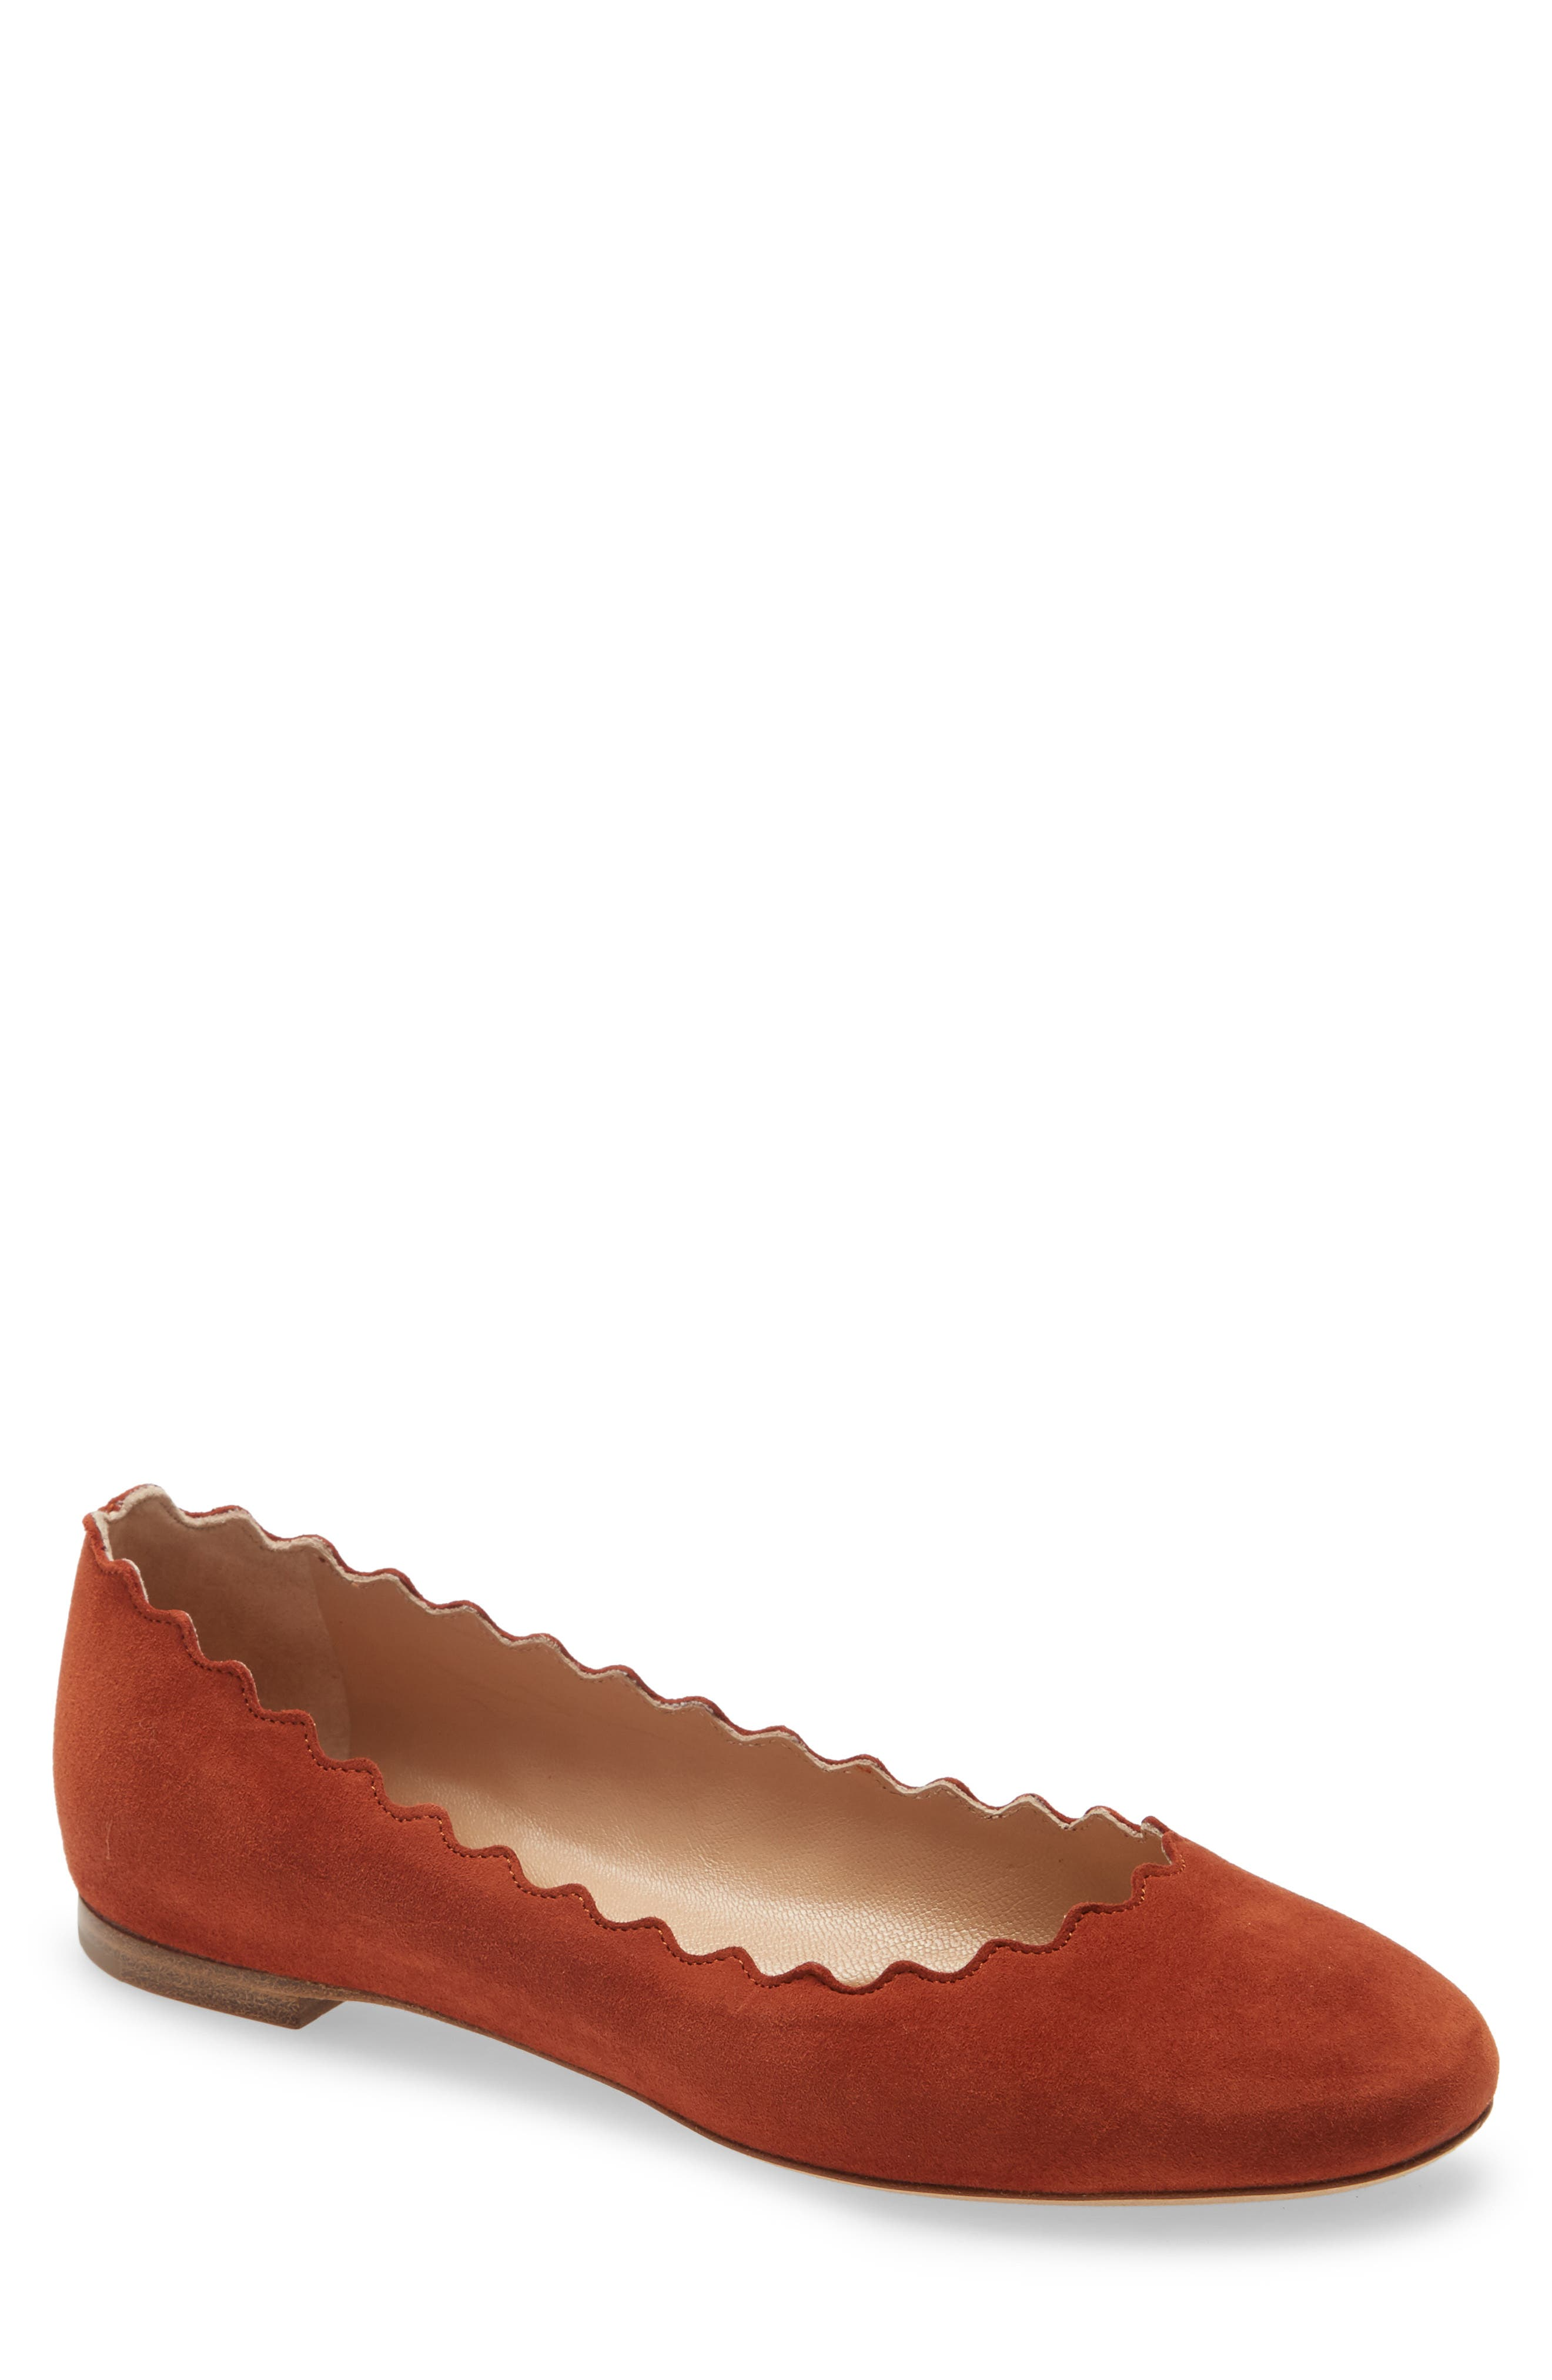 Lauren Ballerina Flats by Chloe, available on nordstrom.com for $515 Angelina Jolie Shoes Exact Product